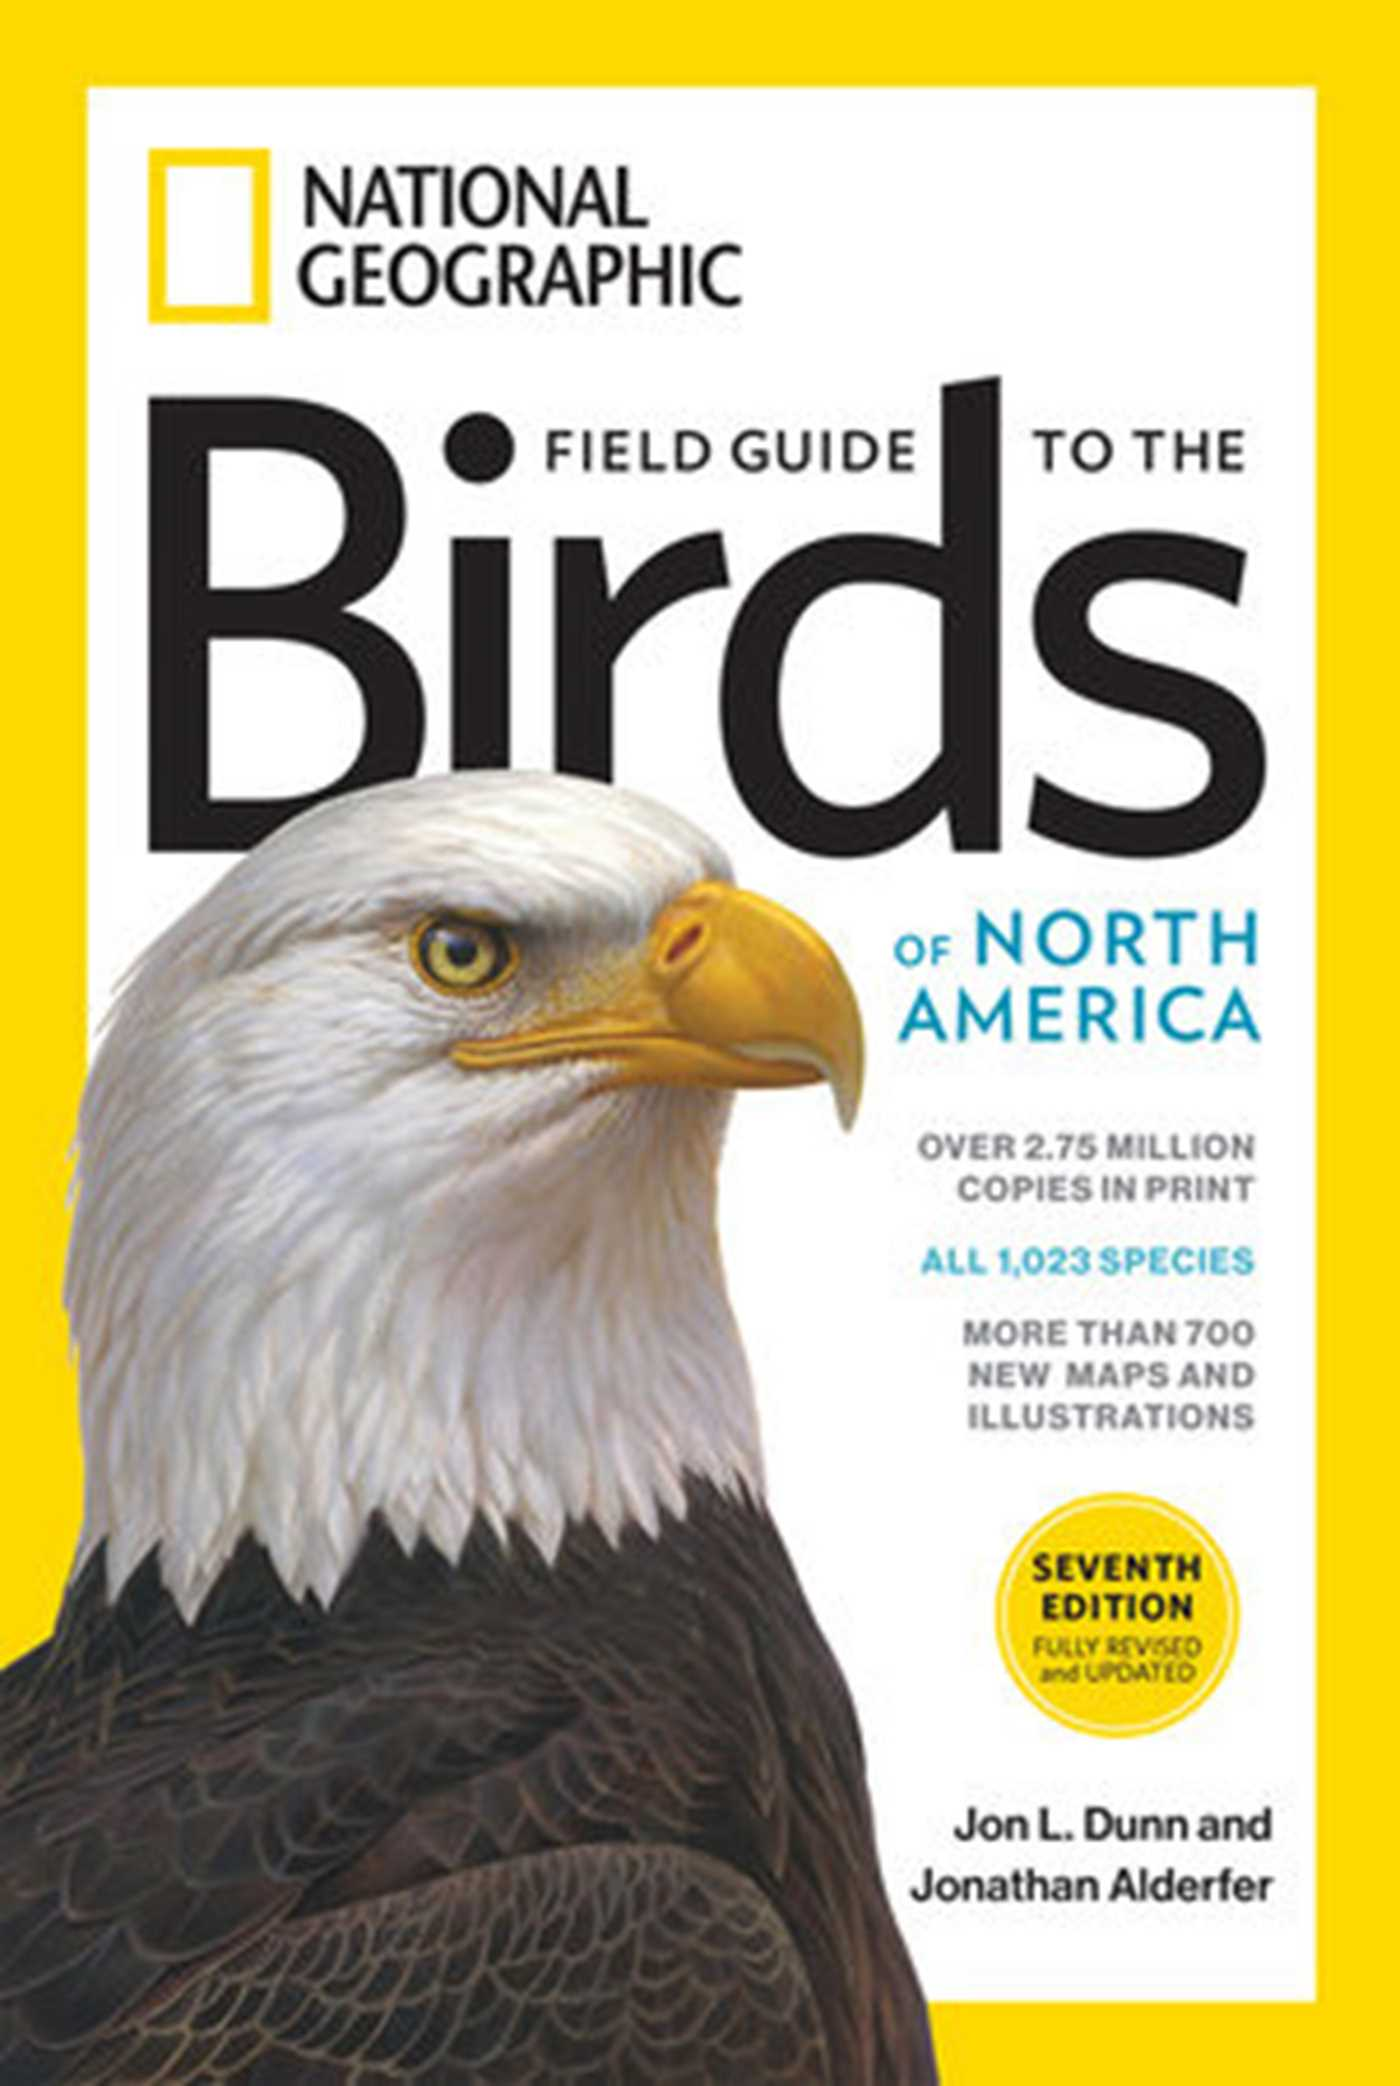 Field guide to the birds of north america 7th edition book by jon book cover image jpg field guide to the birds of north america 7th edition fandeluxe Image collections